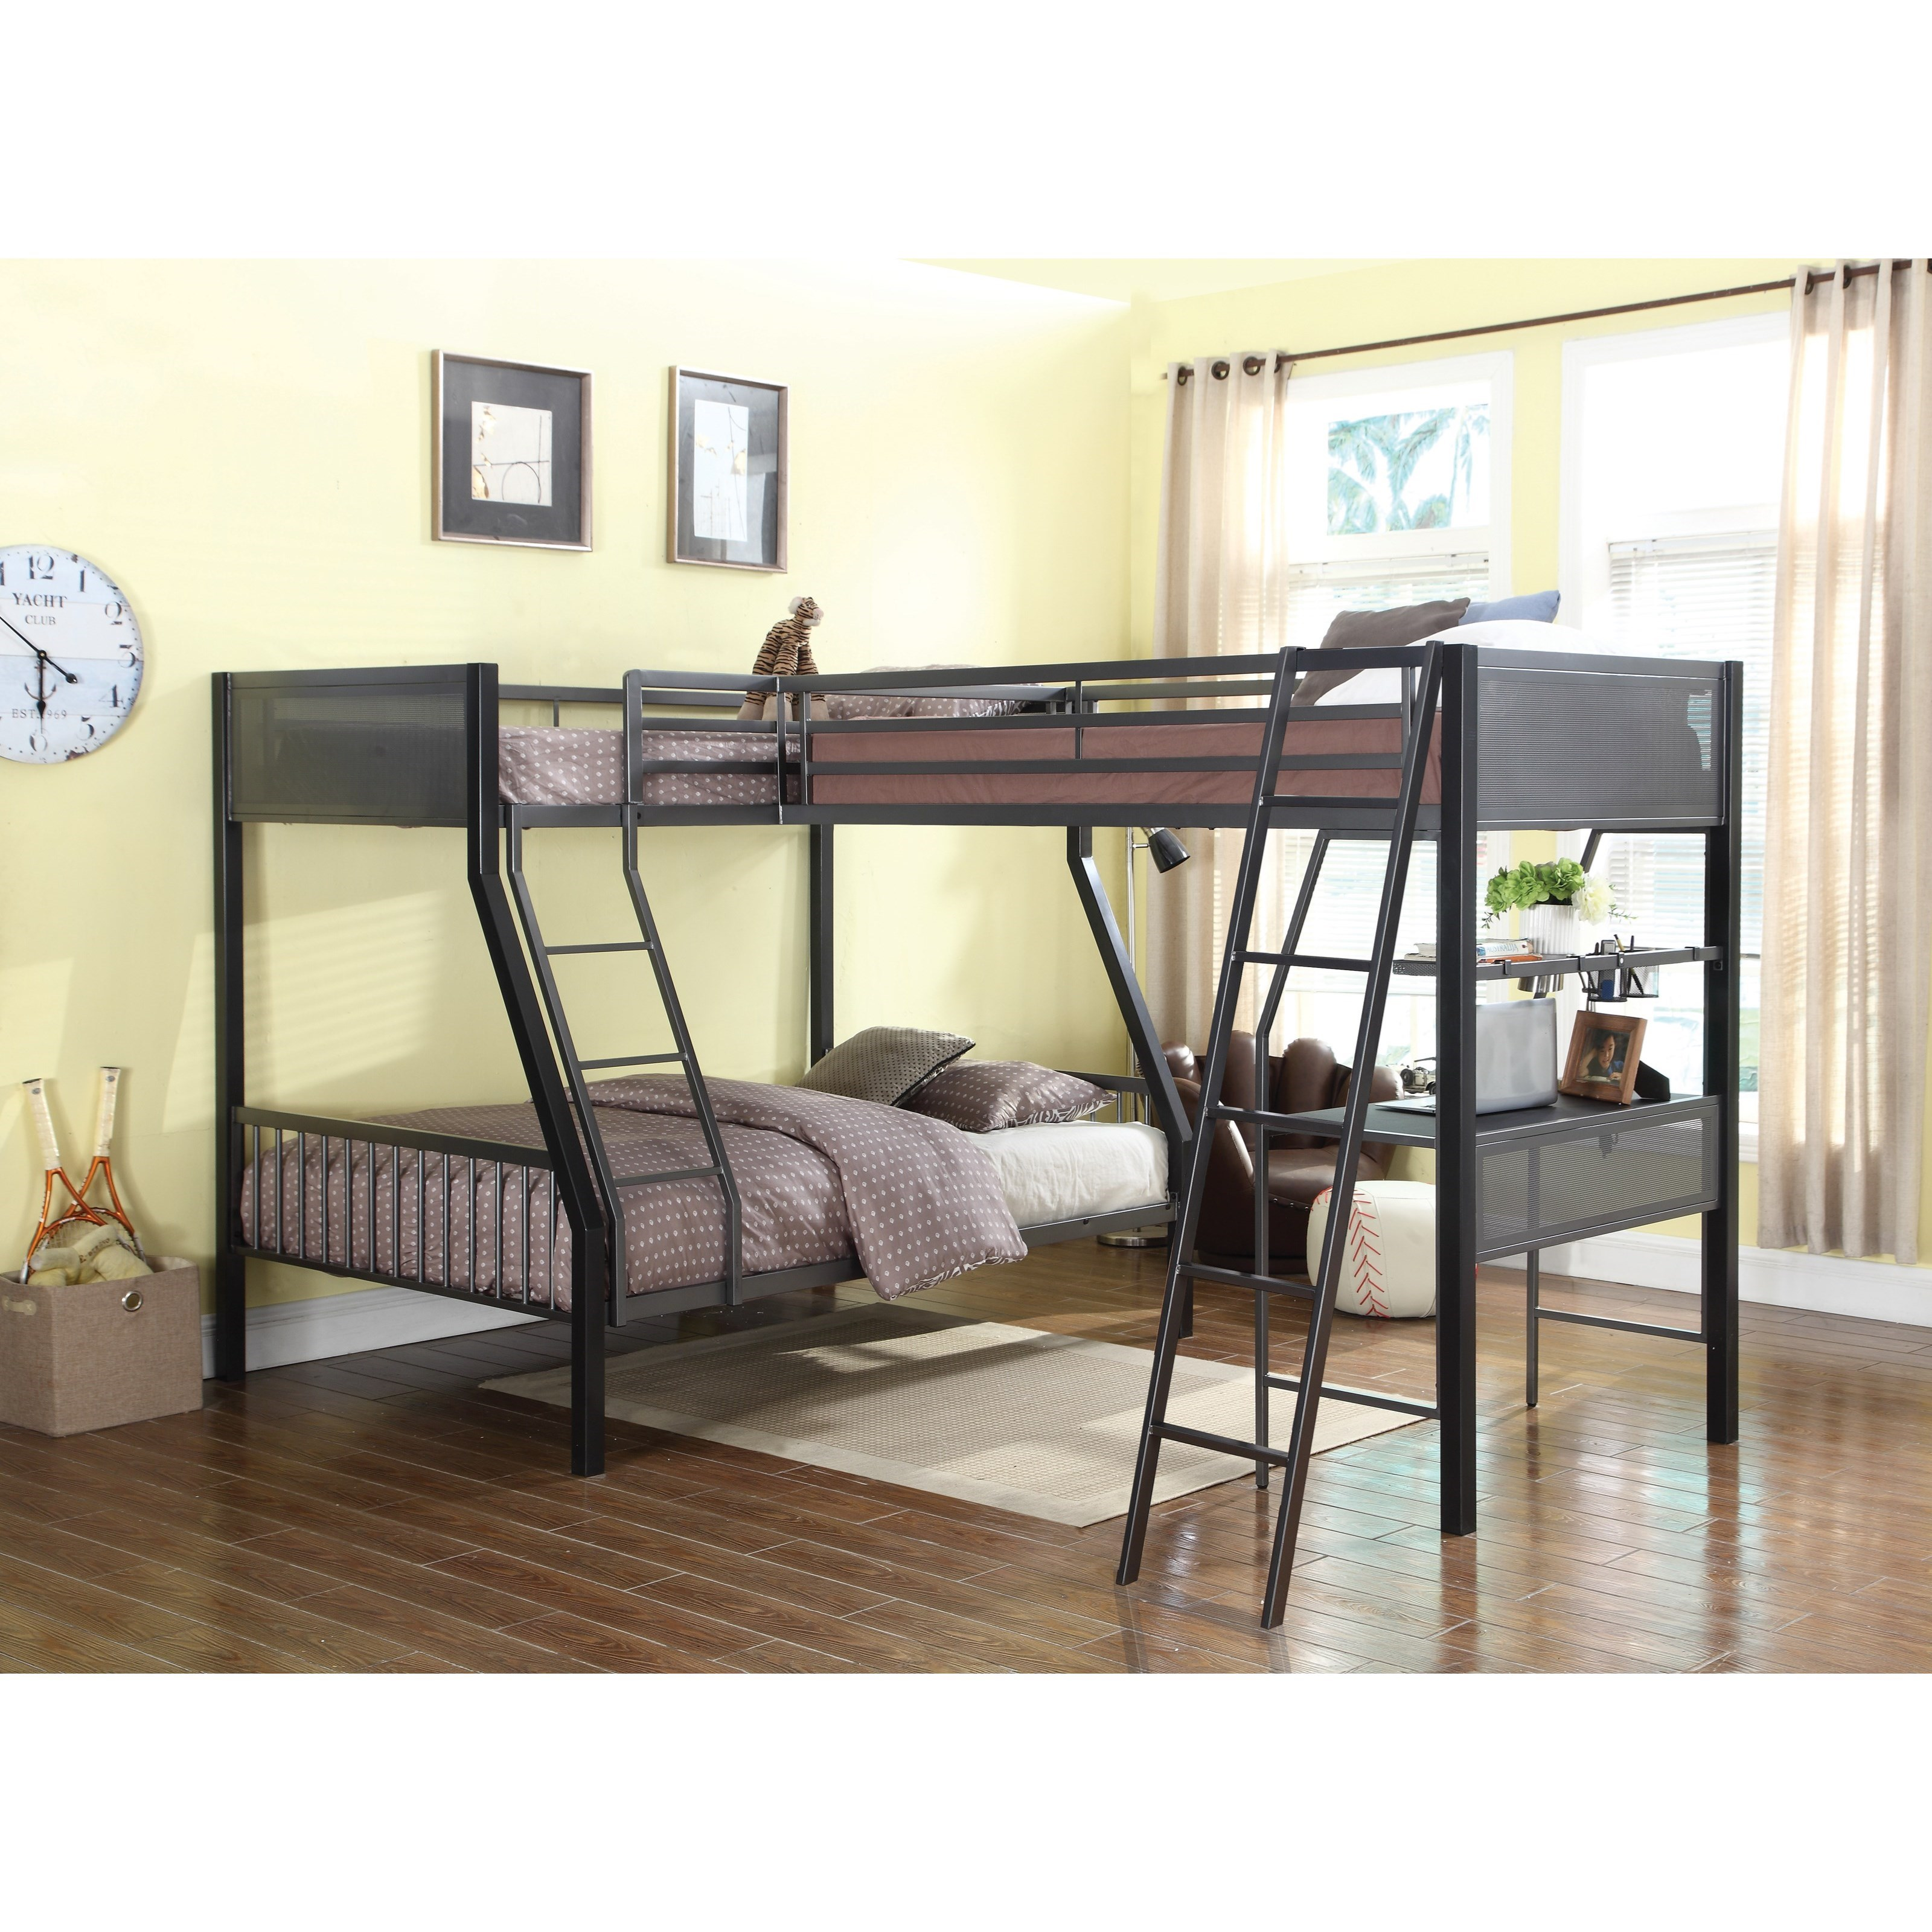 Coaster bunks metal twin over full loft bunk bed with loft for Loft net bed